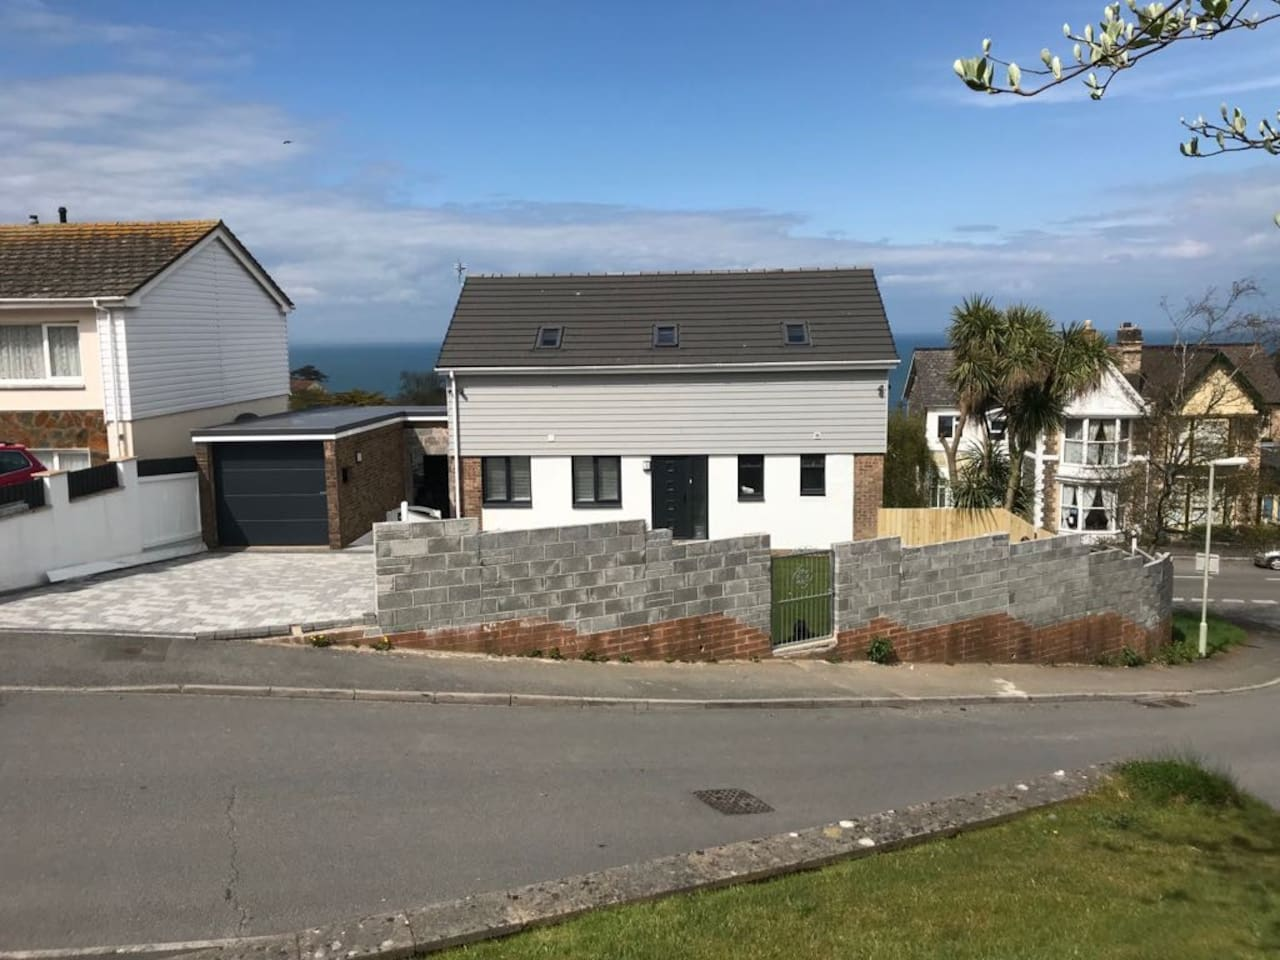 Newly refurbished, 5 bedroom house with private parking for 2  vehicles